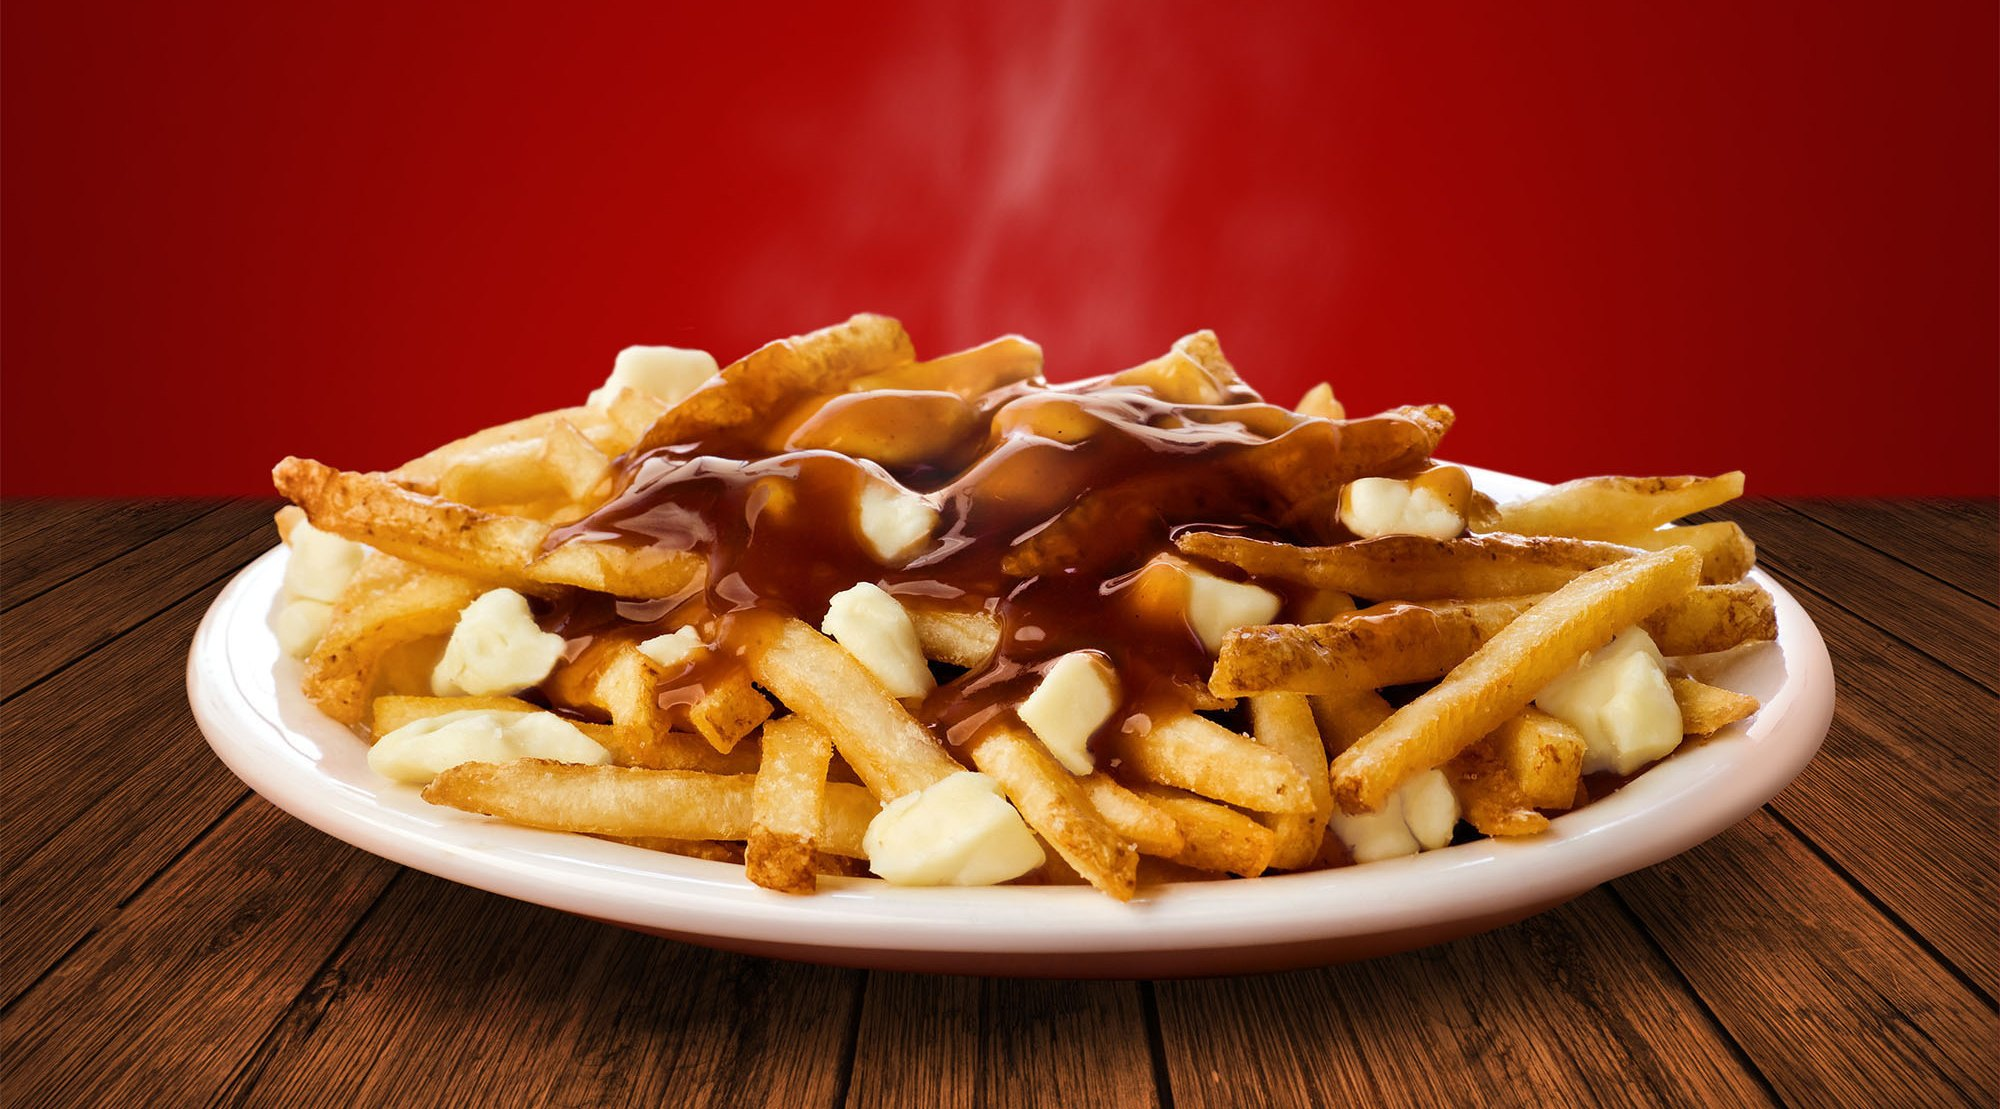 WENDY'S RESTAURANTS OF CANADA - Oh Poutine! Grab your forks